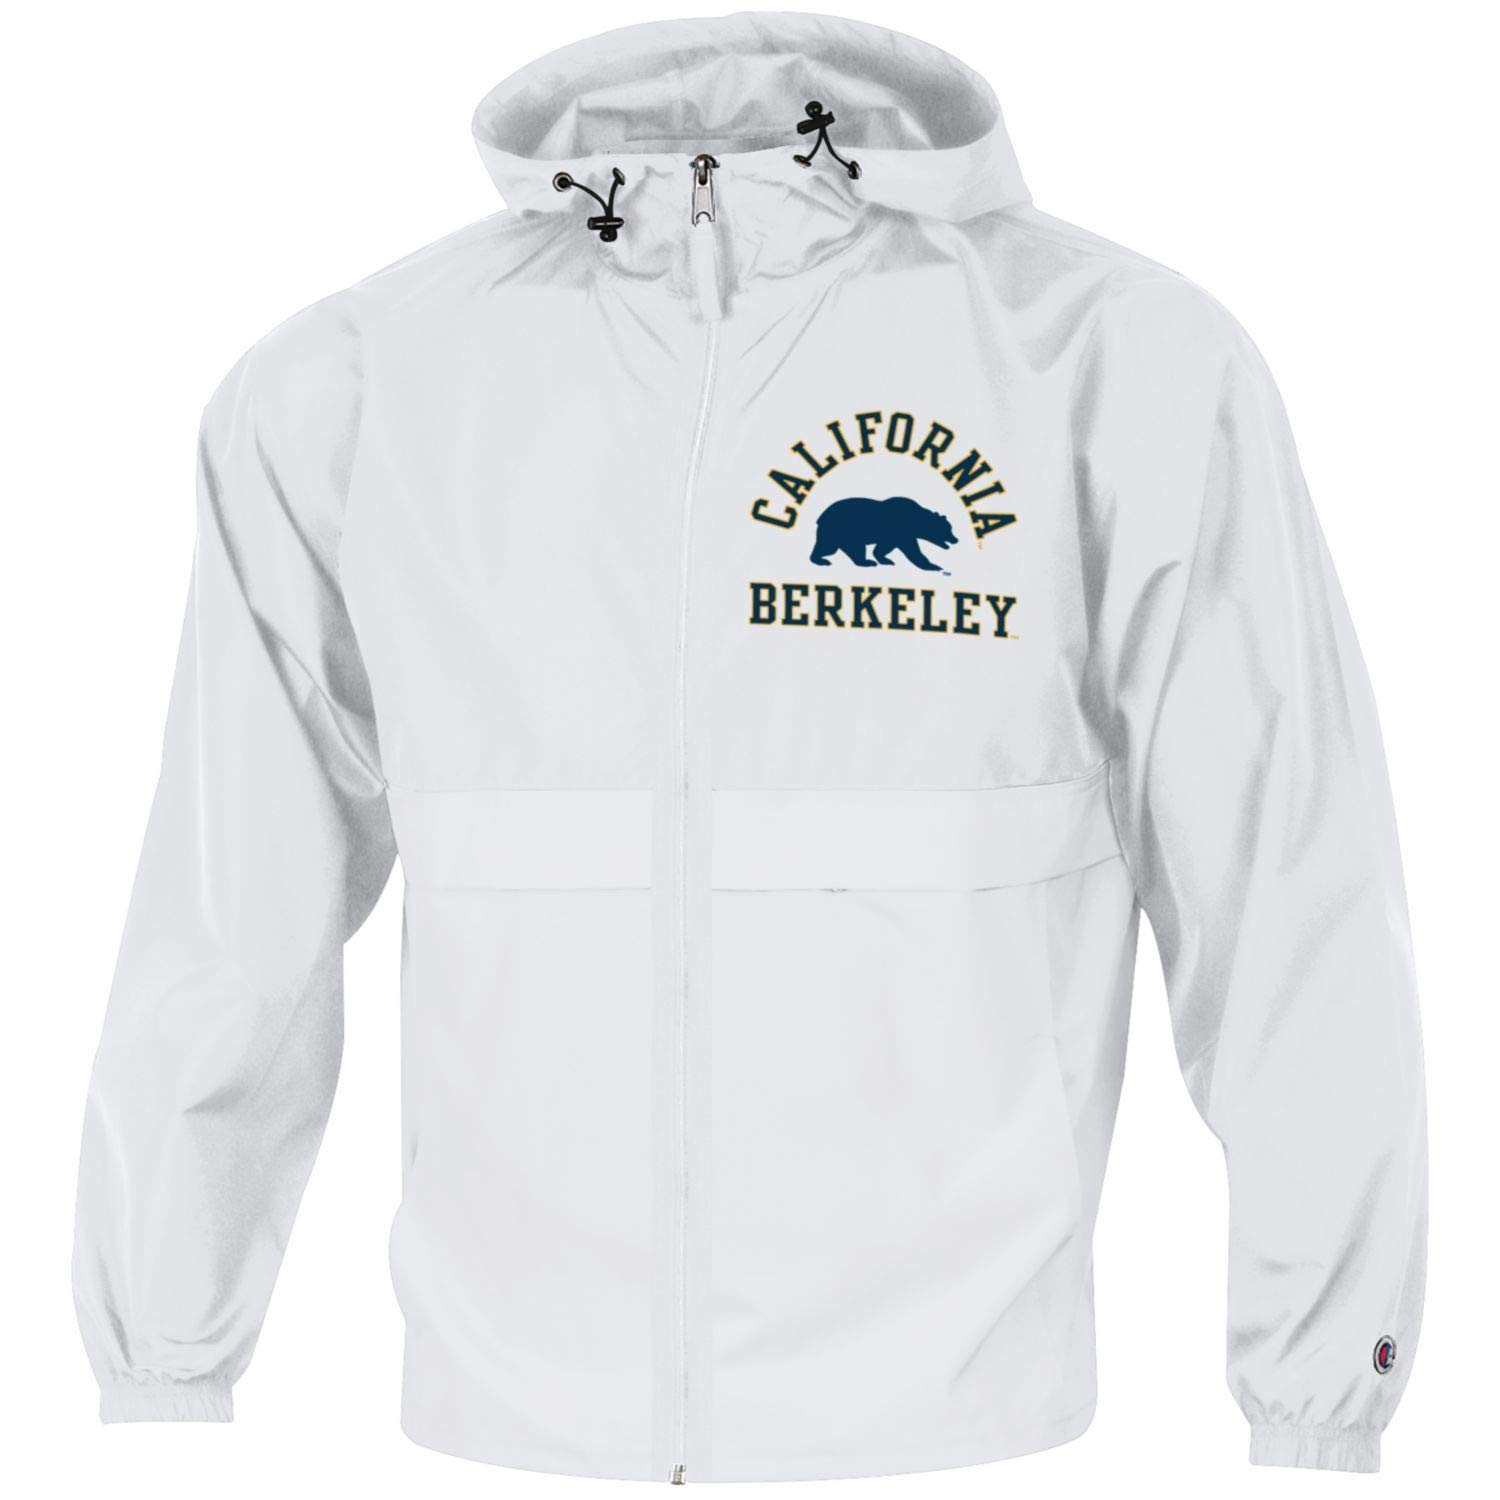 Where To Buy Cheap College Sweatshirts Online – DACC